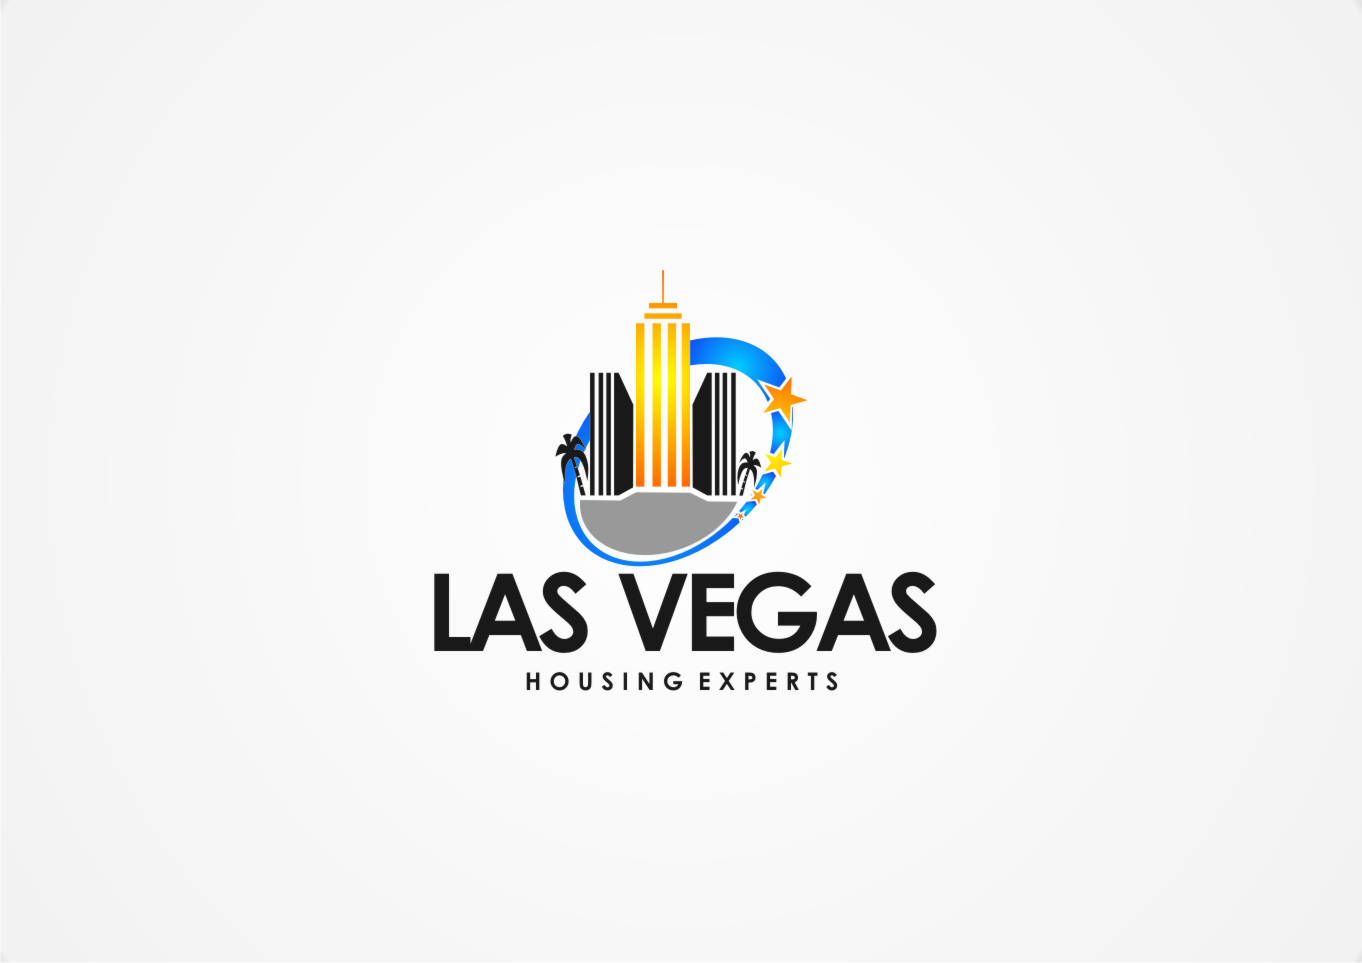 Logo Design by yanxsant - Entry No. 130 in the Logo Design Contest Las Vegas Housing Experts Logo Design.